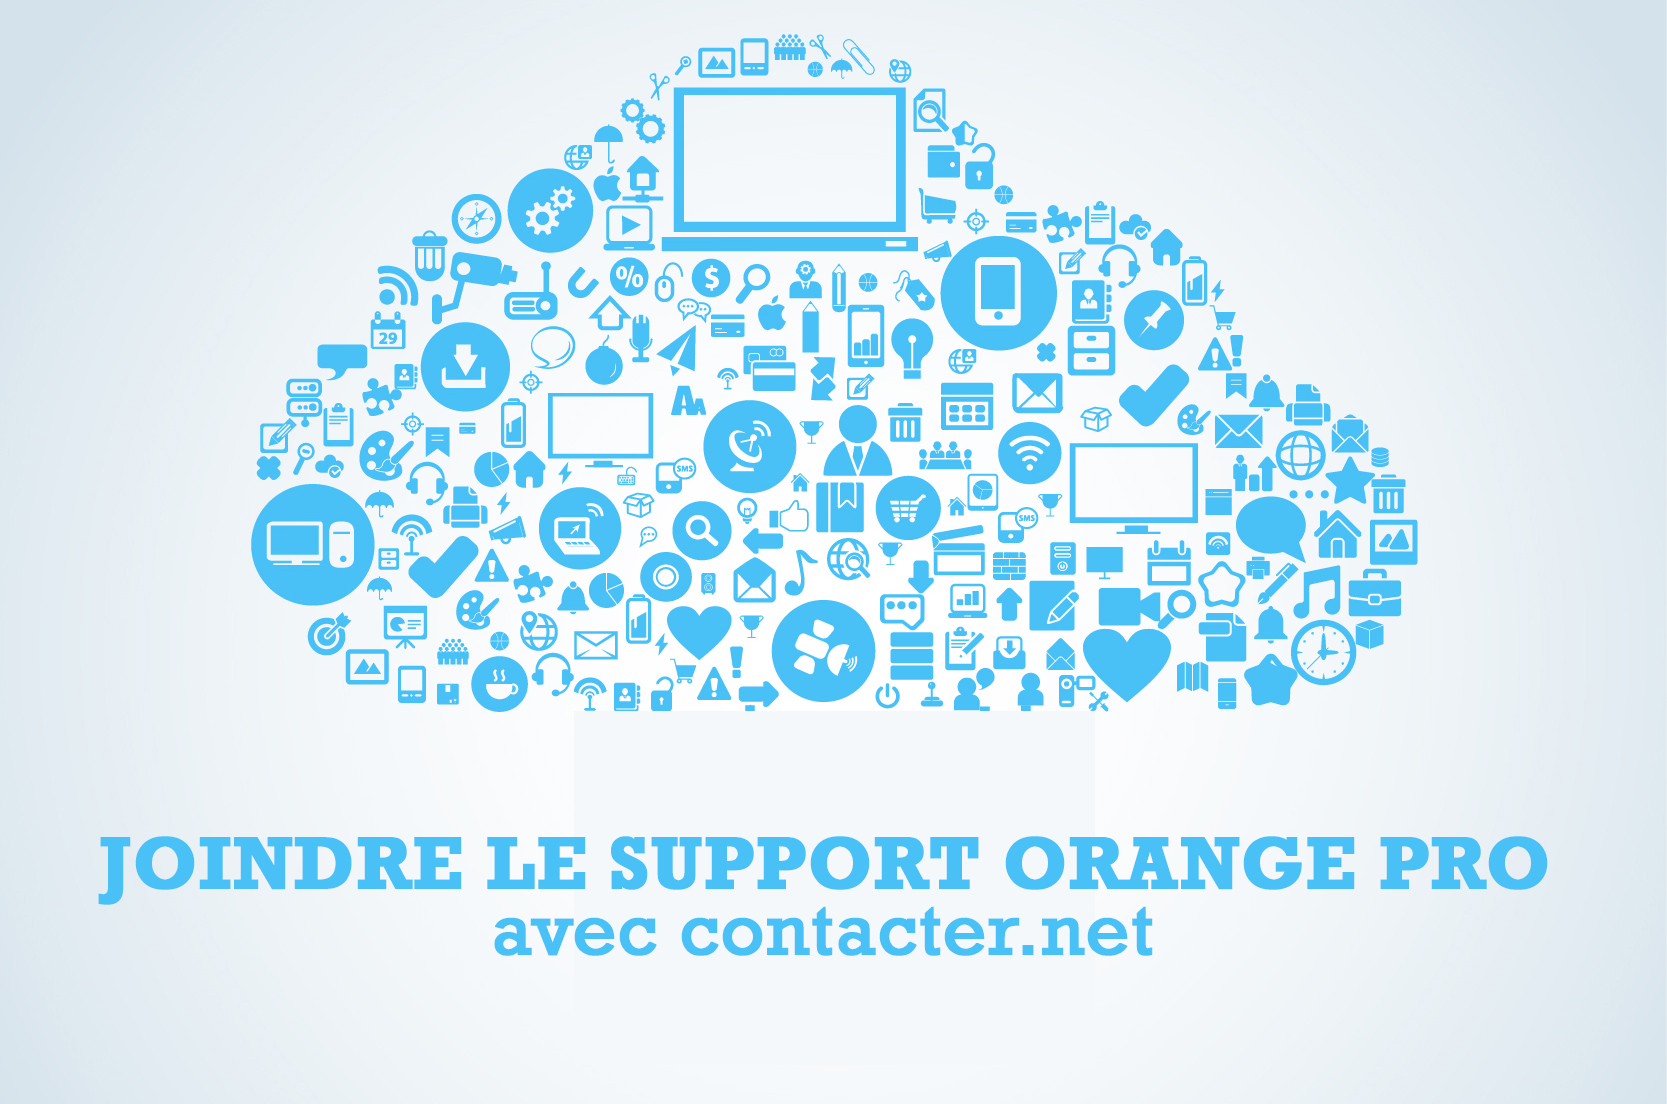 joindre le support orange pro